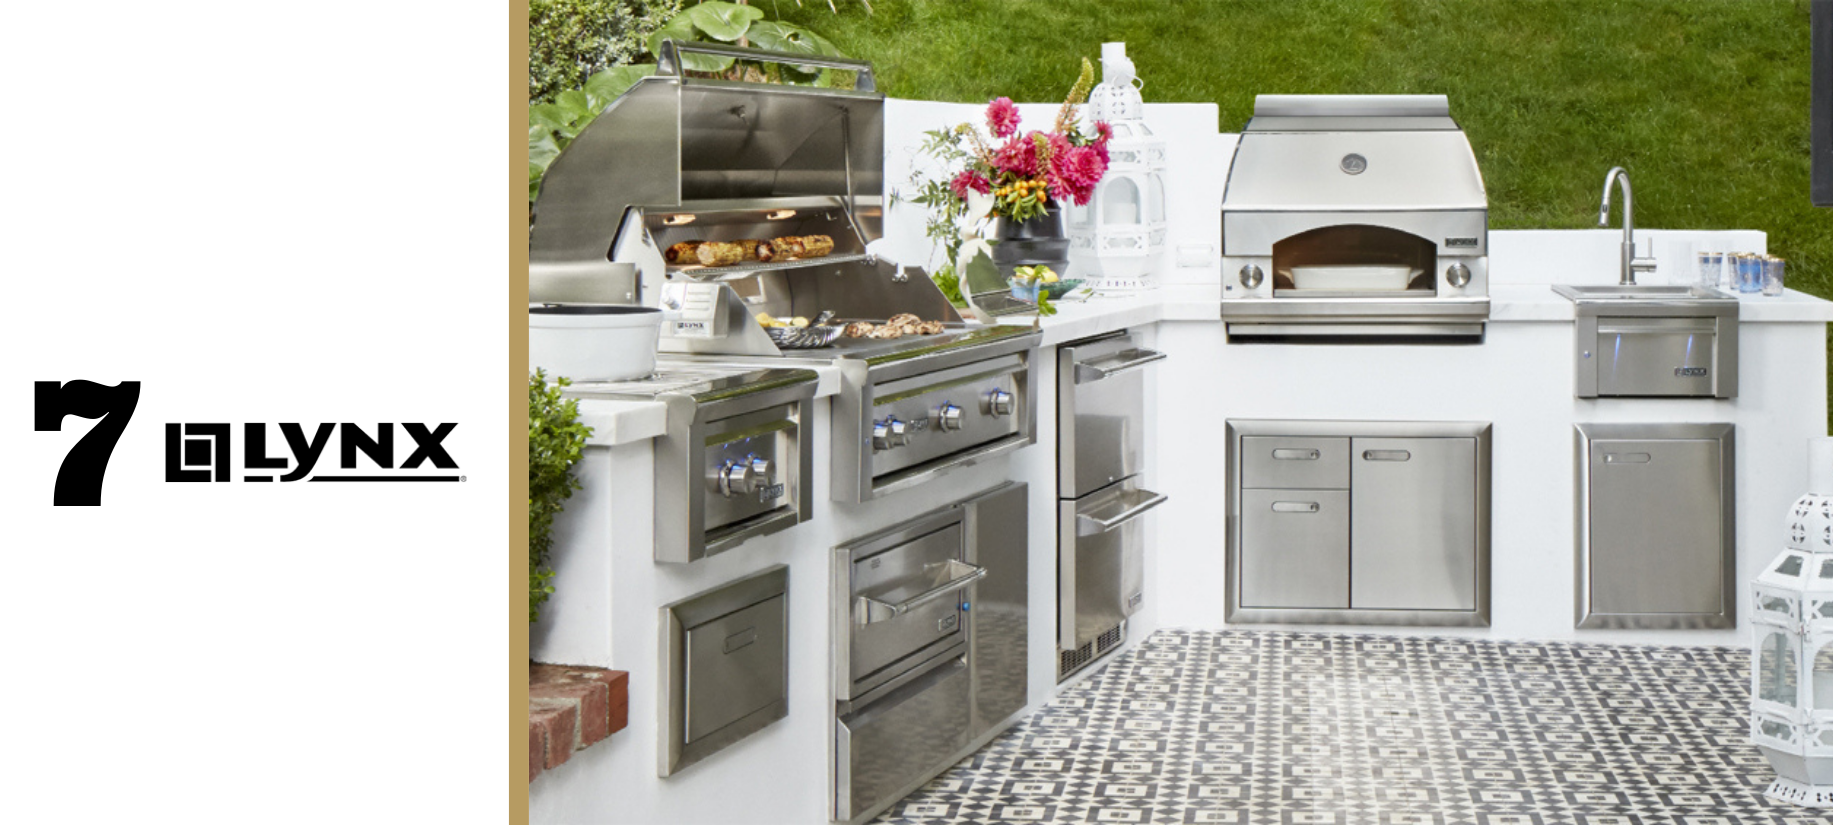 Lynx outdoor grills and custom outdoor kitchen products